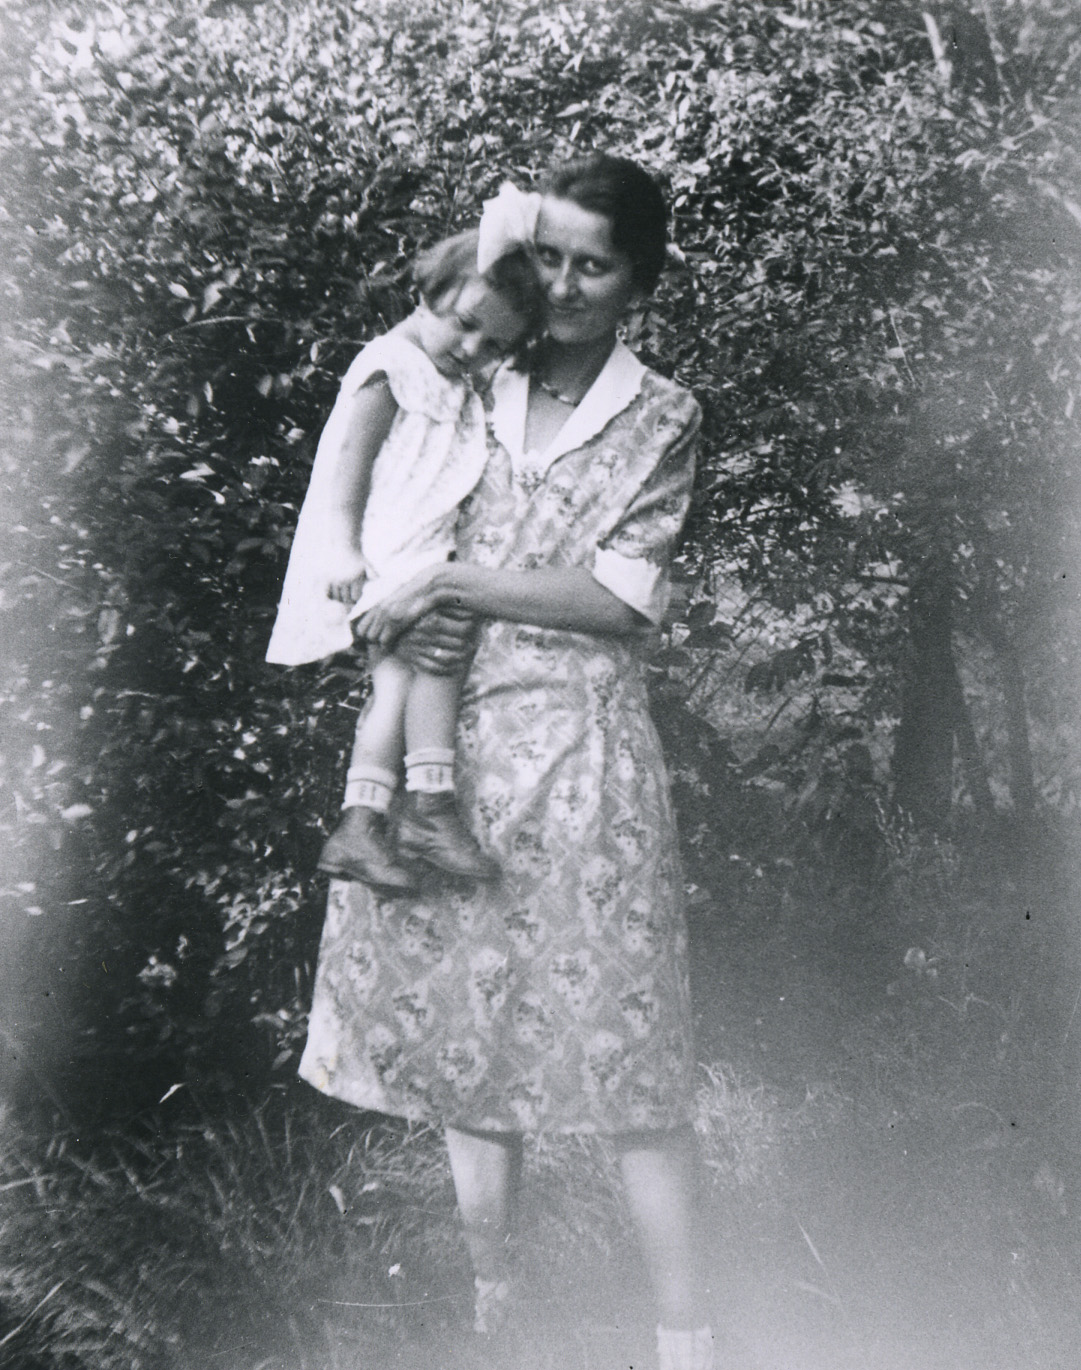 A woman wearing a dress holds a small girl.